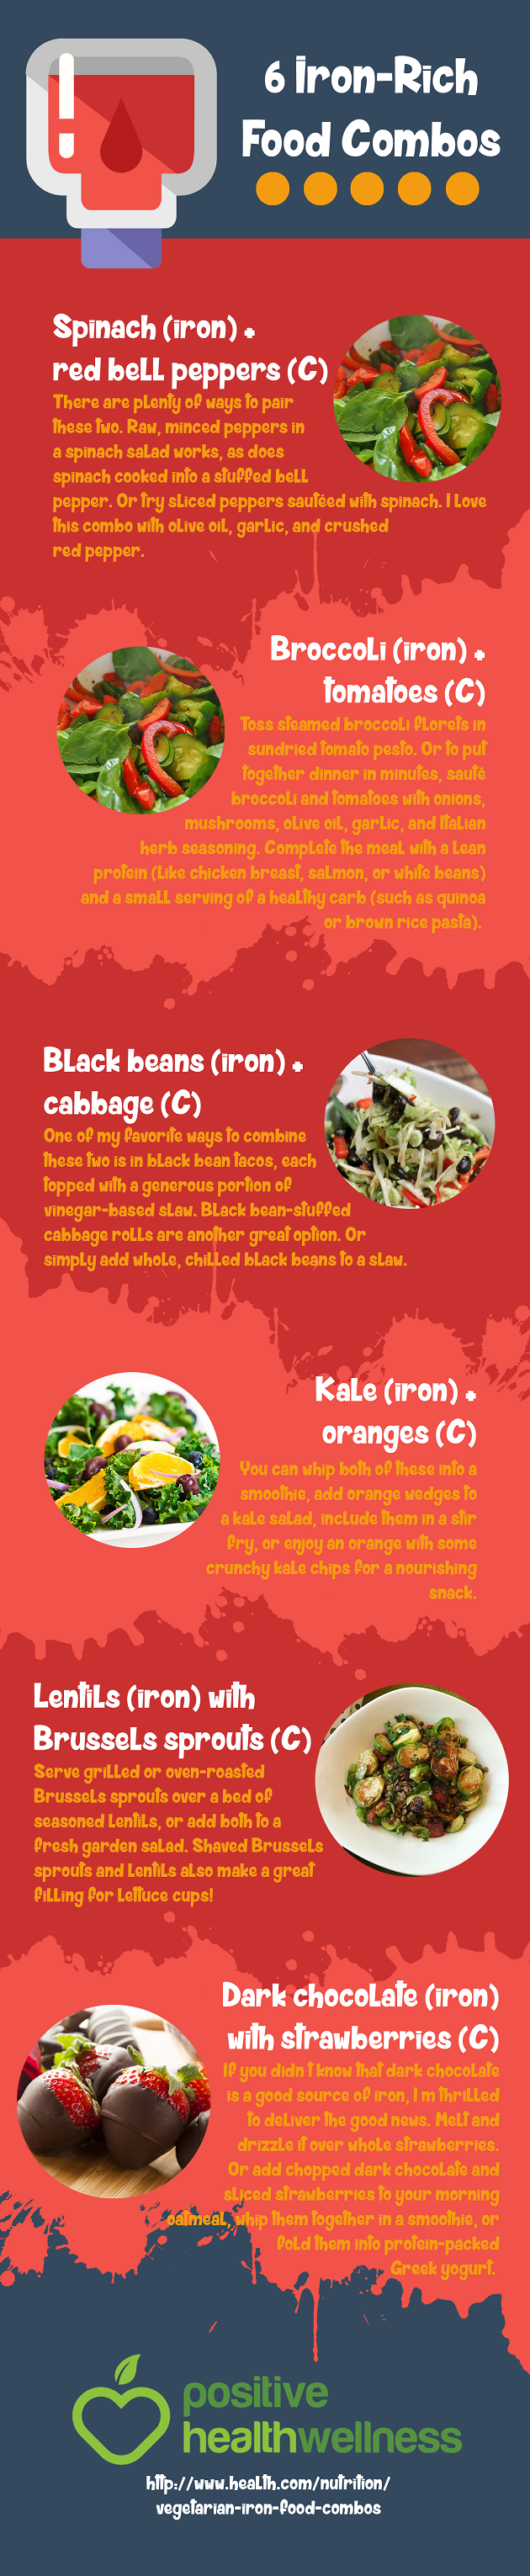 6 iron rich food combos positive health wellness infographic hypothyroidism diet recipes 6 iron rich food combos positive health wellness infographic get the entire hypothyroidism revolution system today forumfinder Image collections